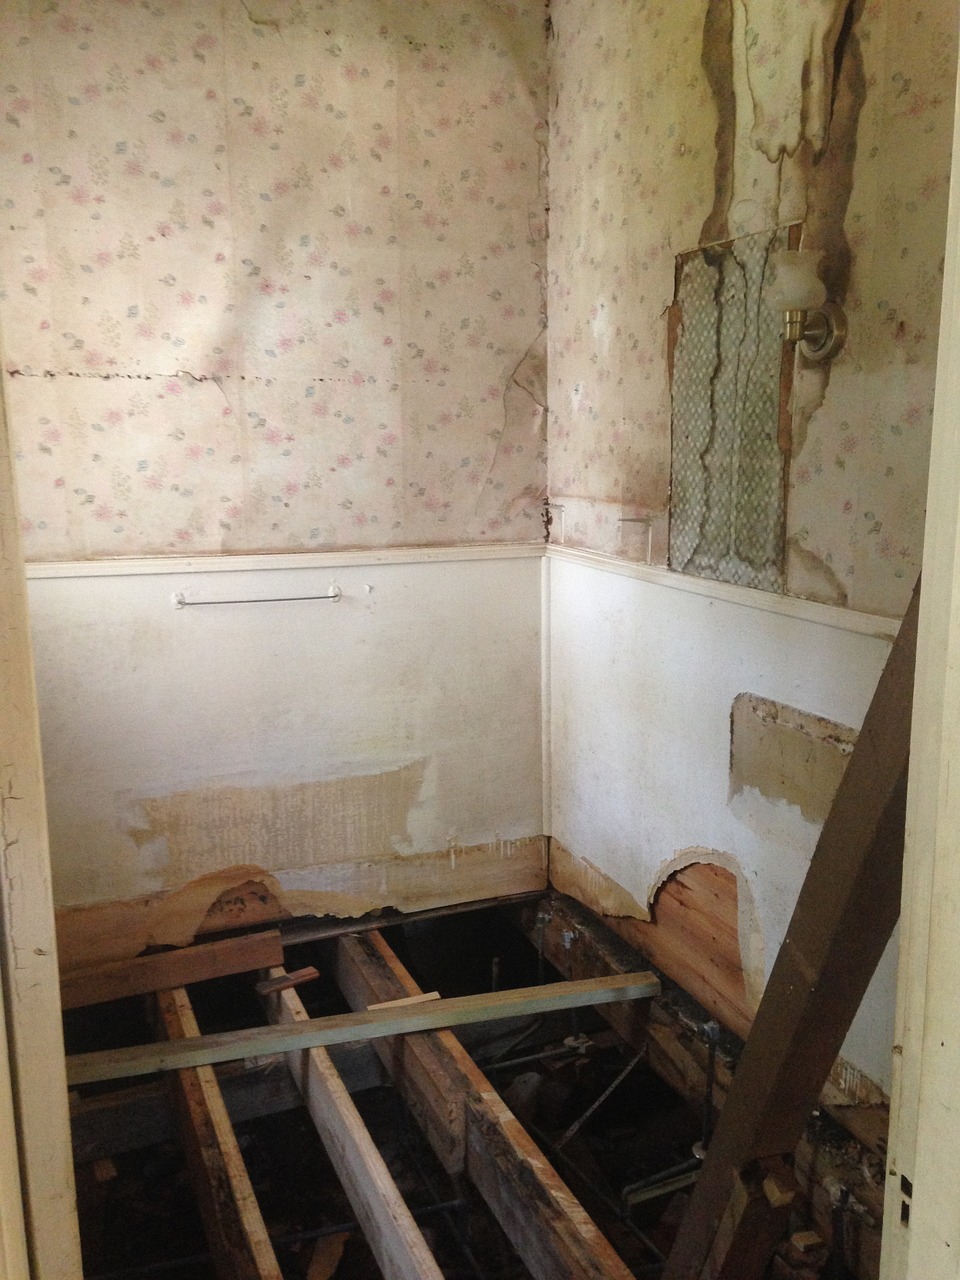 Bathroom remodeling considerations johnson plumbing in reno for Bathroom remodel reno nv